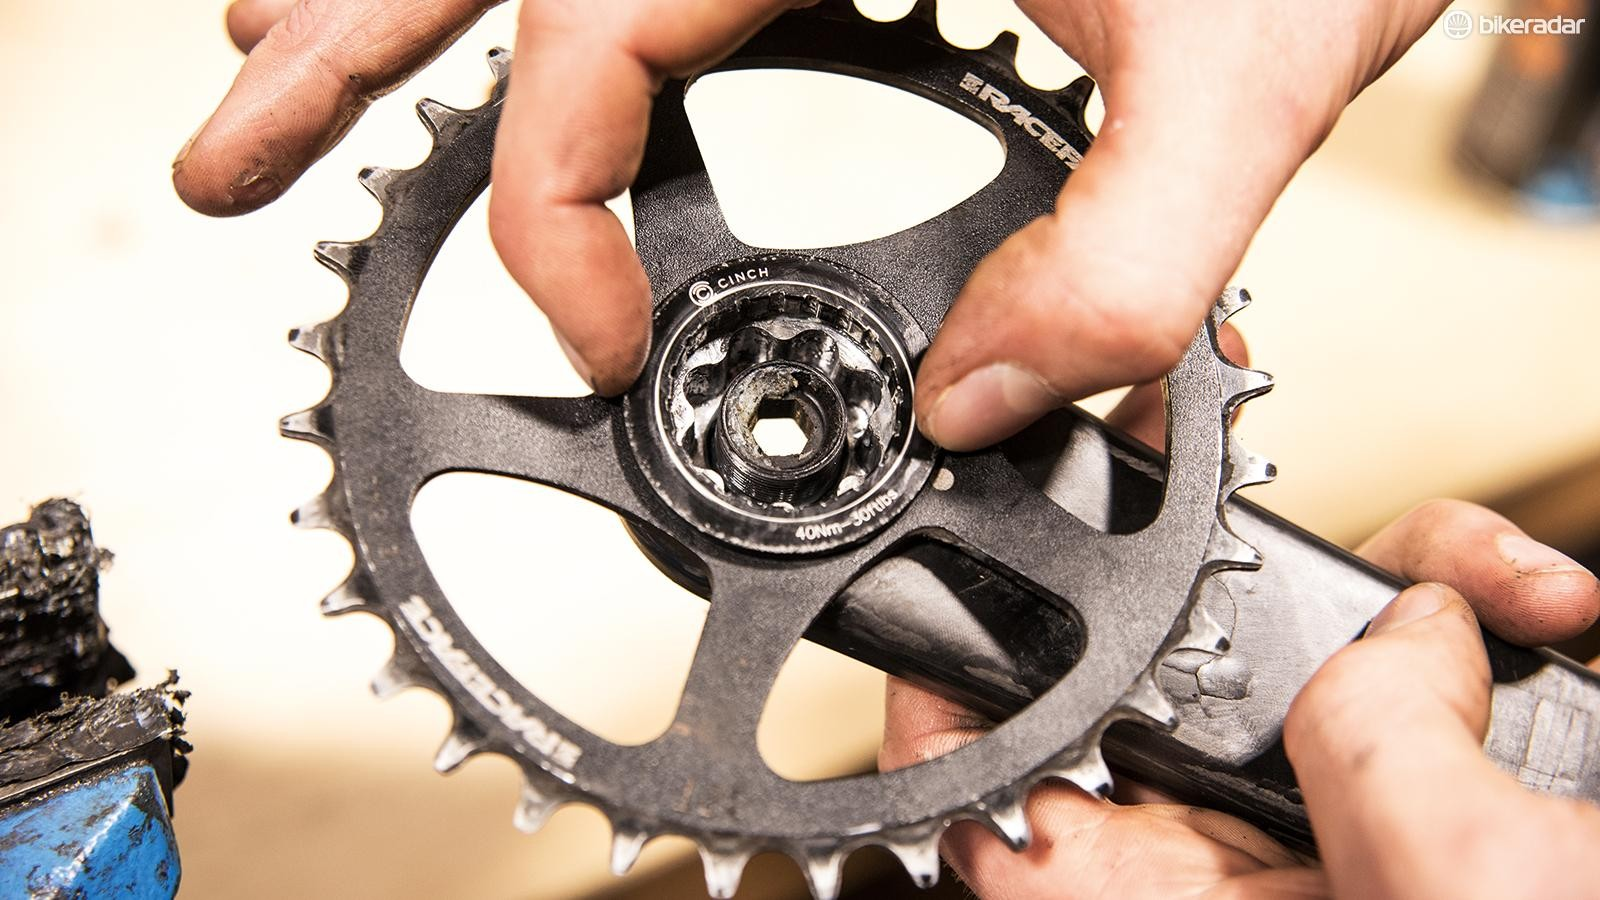 Slot the Cinch onto the splines of the driveside crank arm